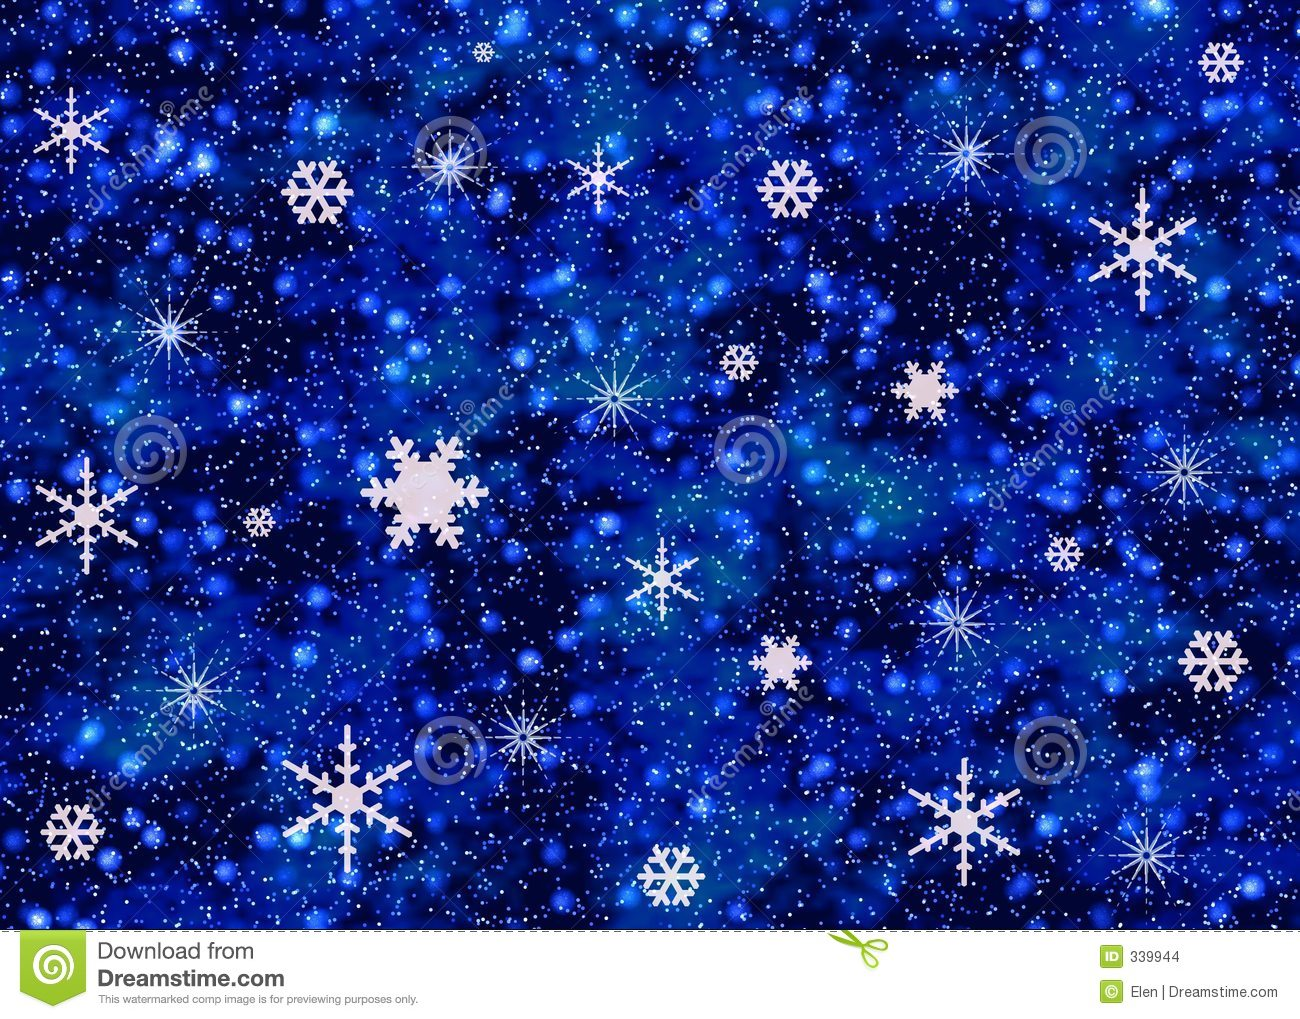 Christmas Wallpaper Snow Falling Snowflakes On Night Sky Stock Images Image 339944